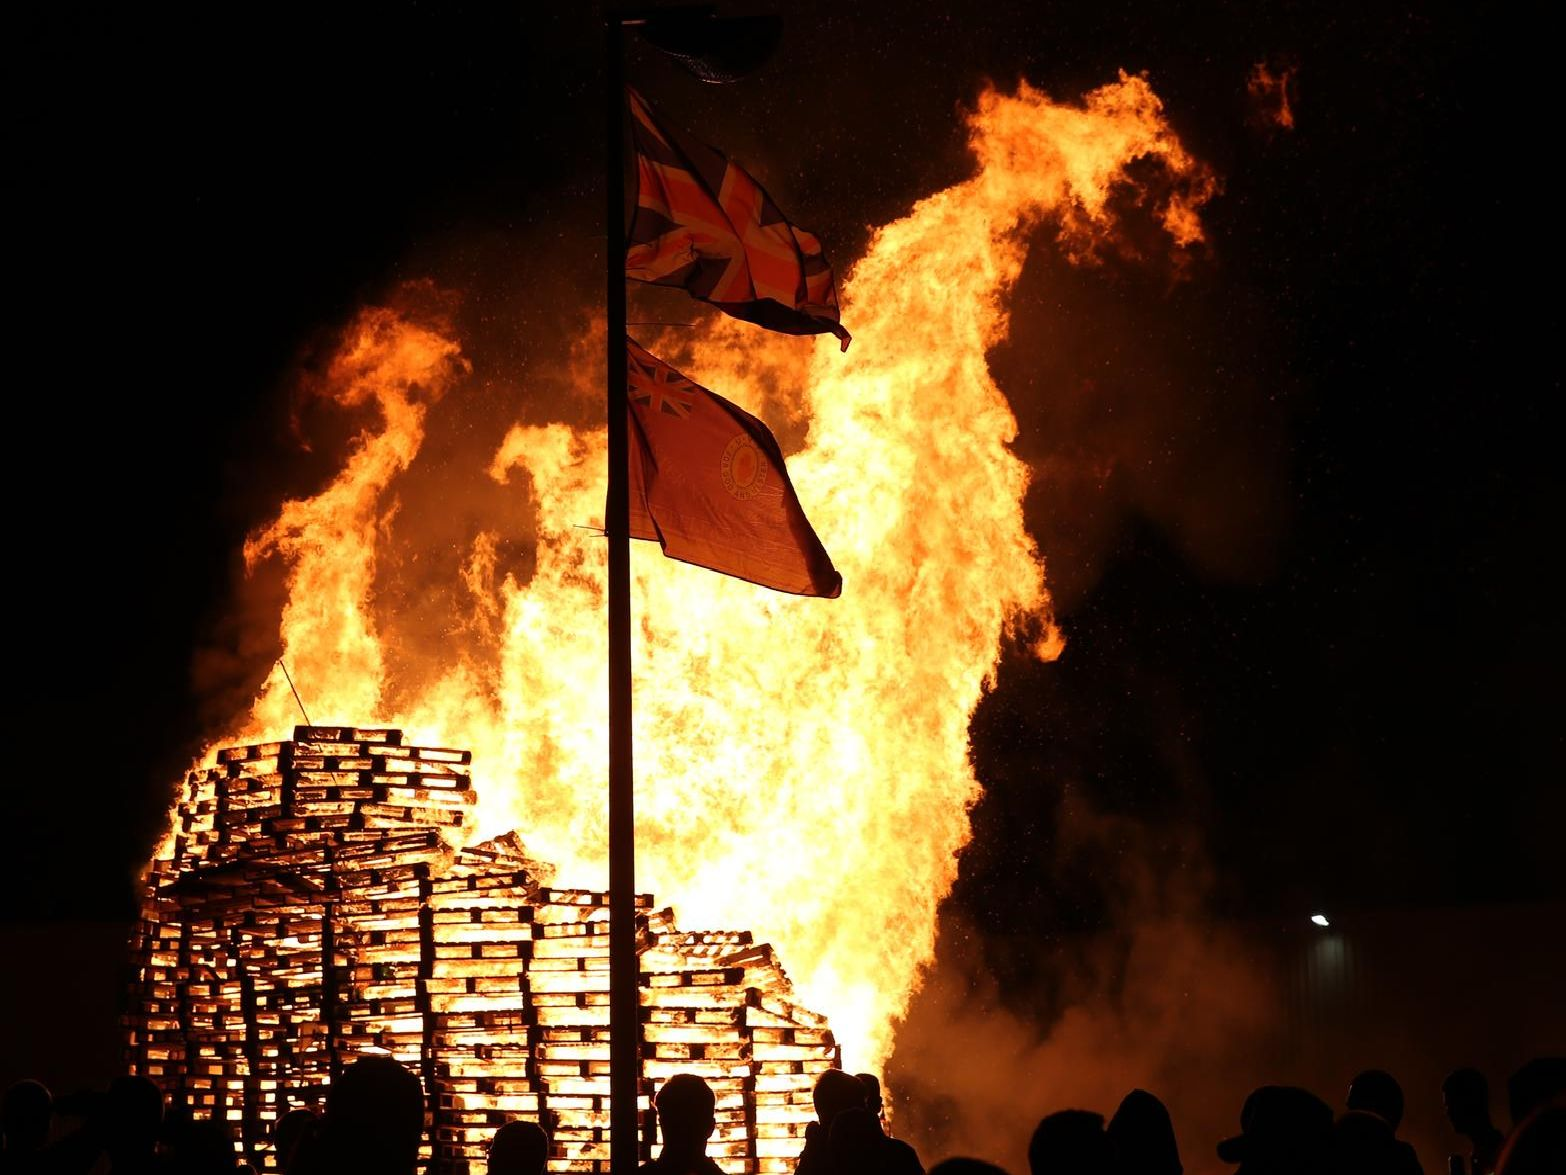 A photo taken during the Eleventh Night Bonfires in Northern Ireland.